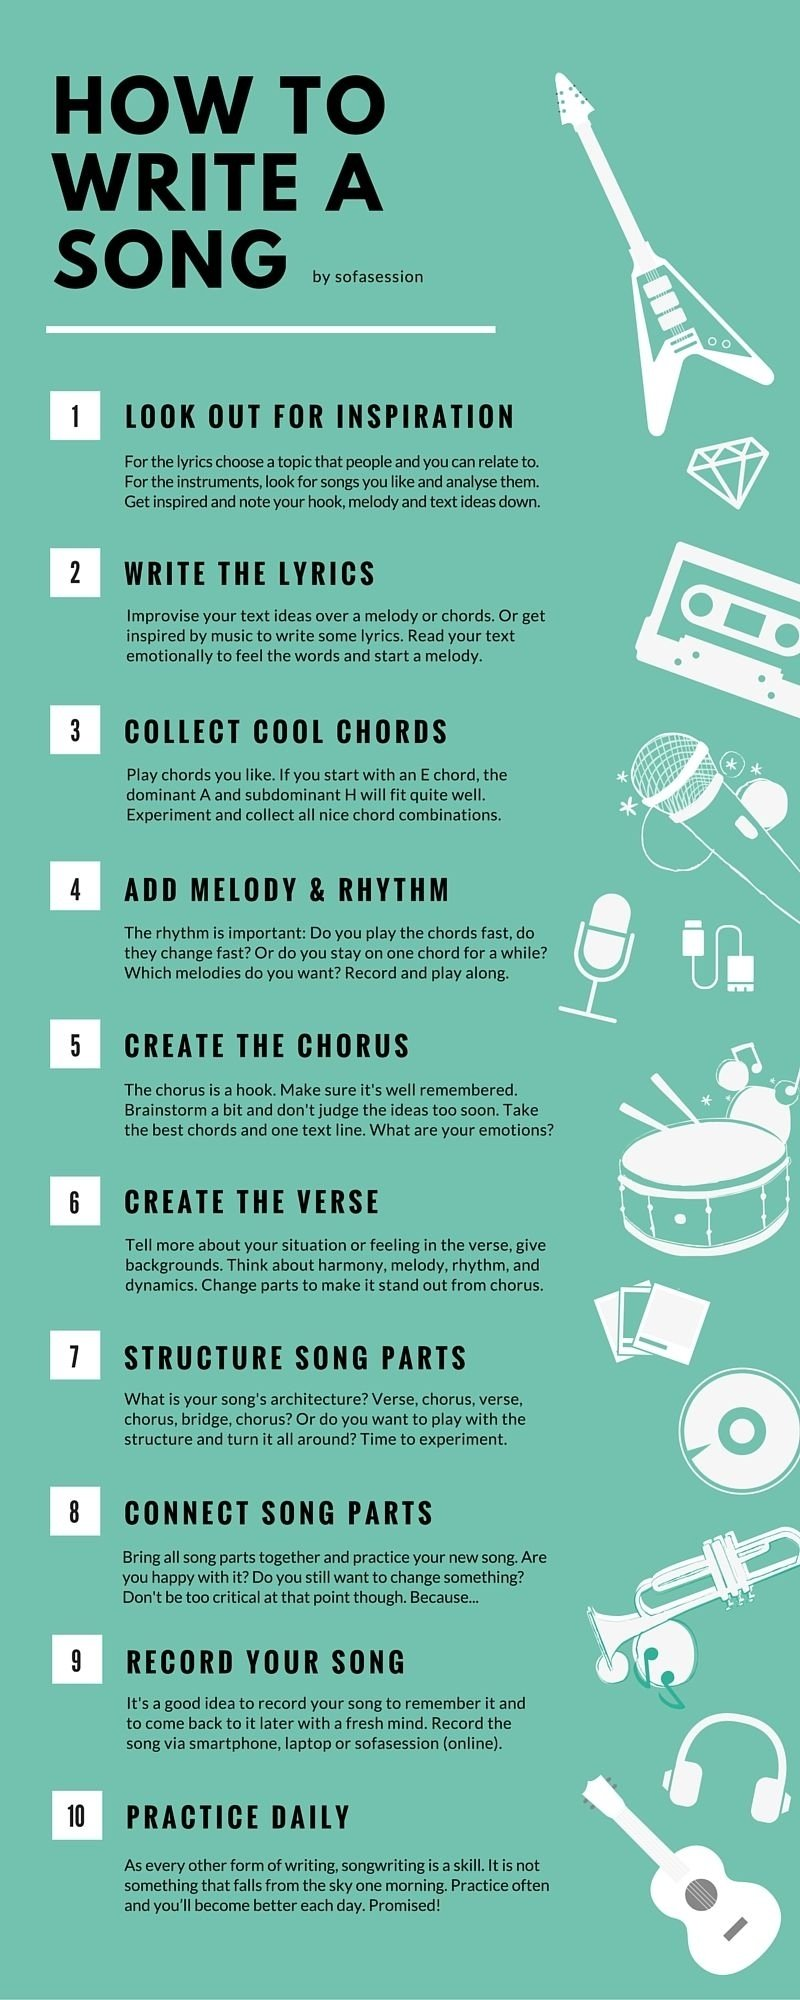 10 Awesome Ideas To Write A Song how to write a song in 10 steps as a beginner the infographic shows 2020